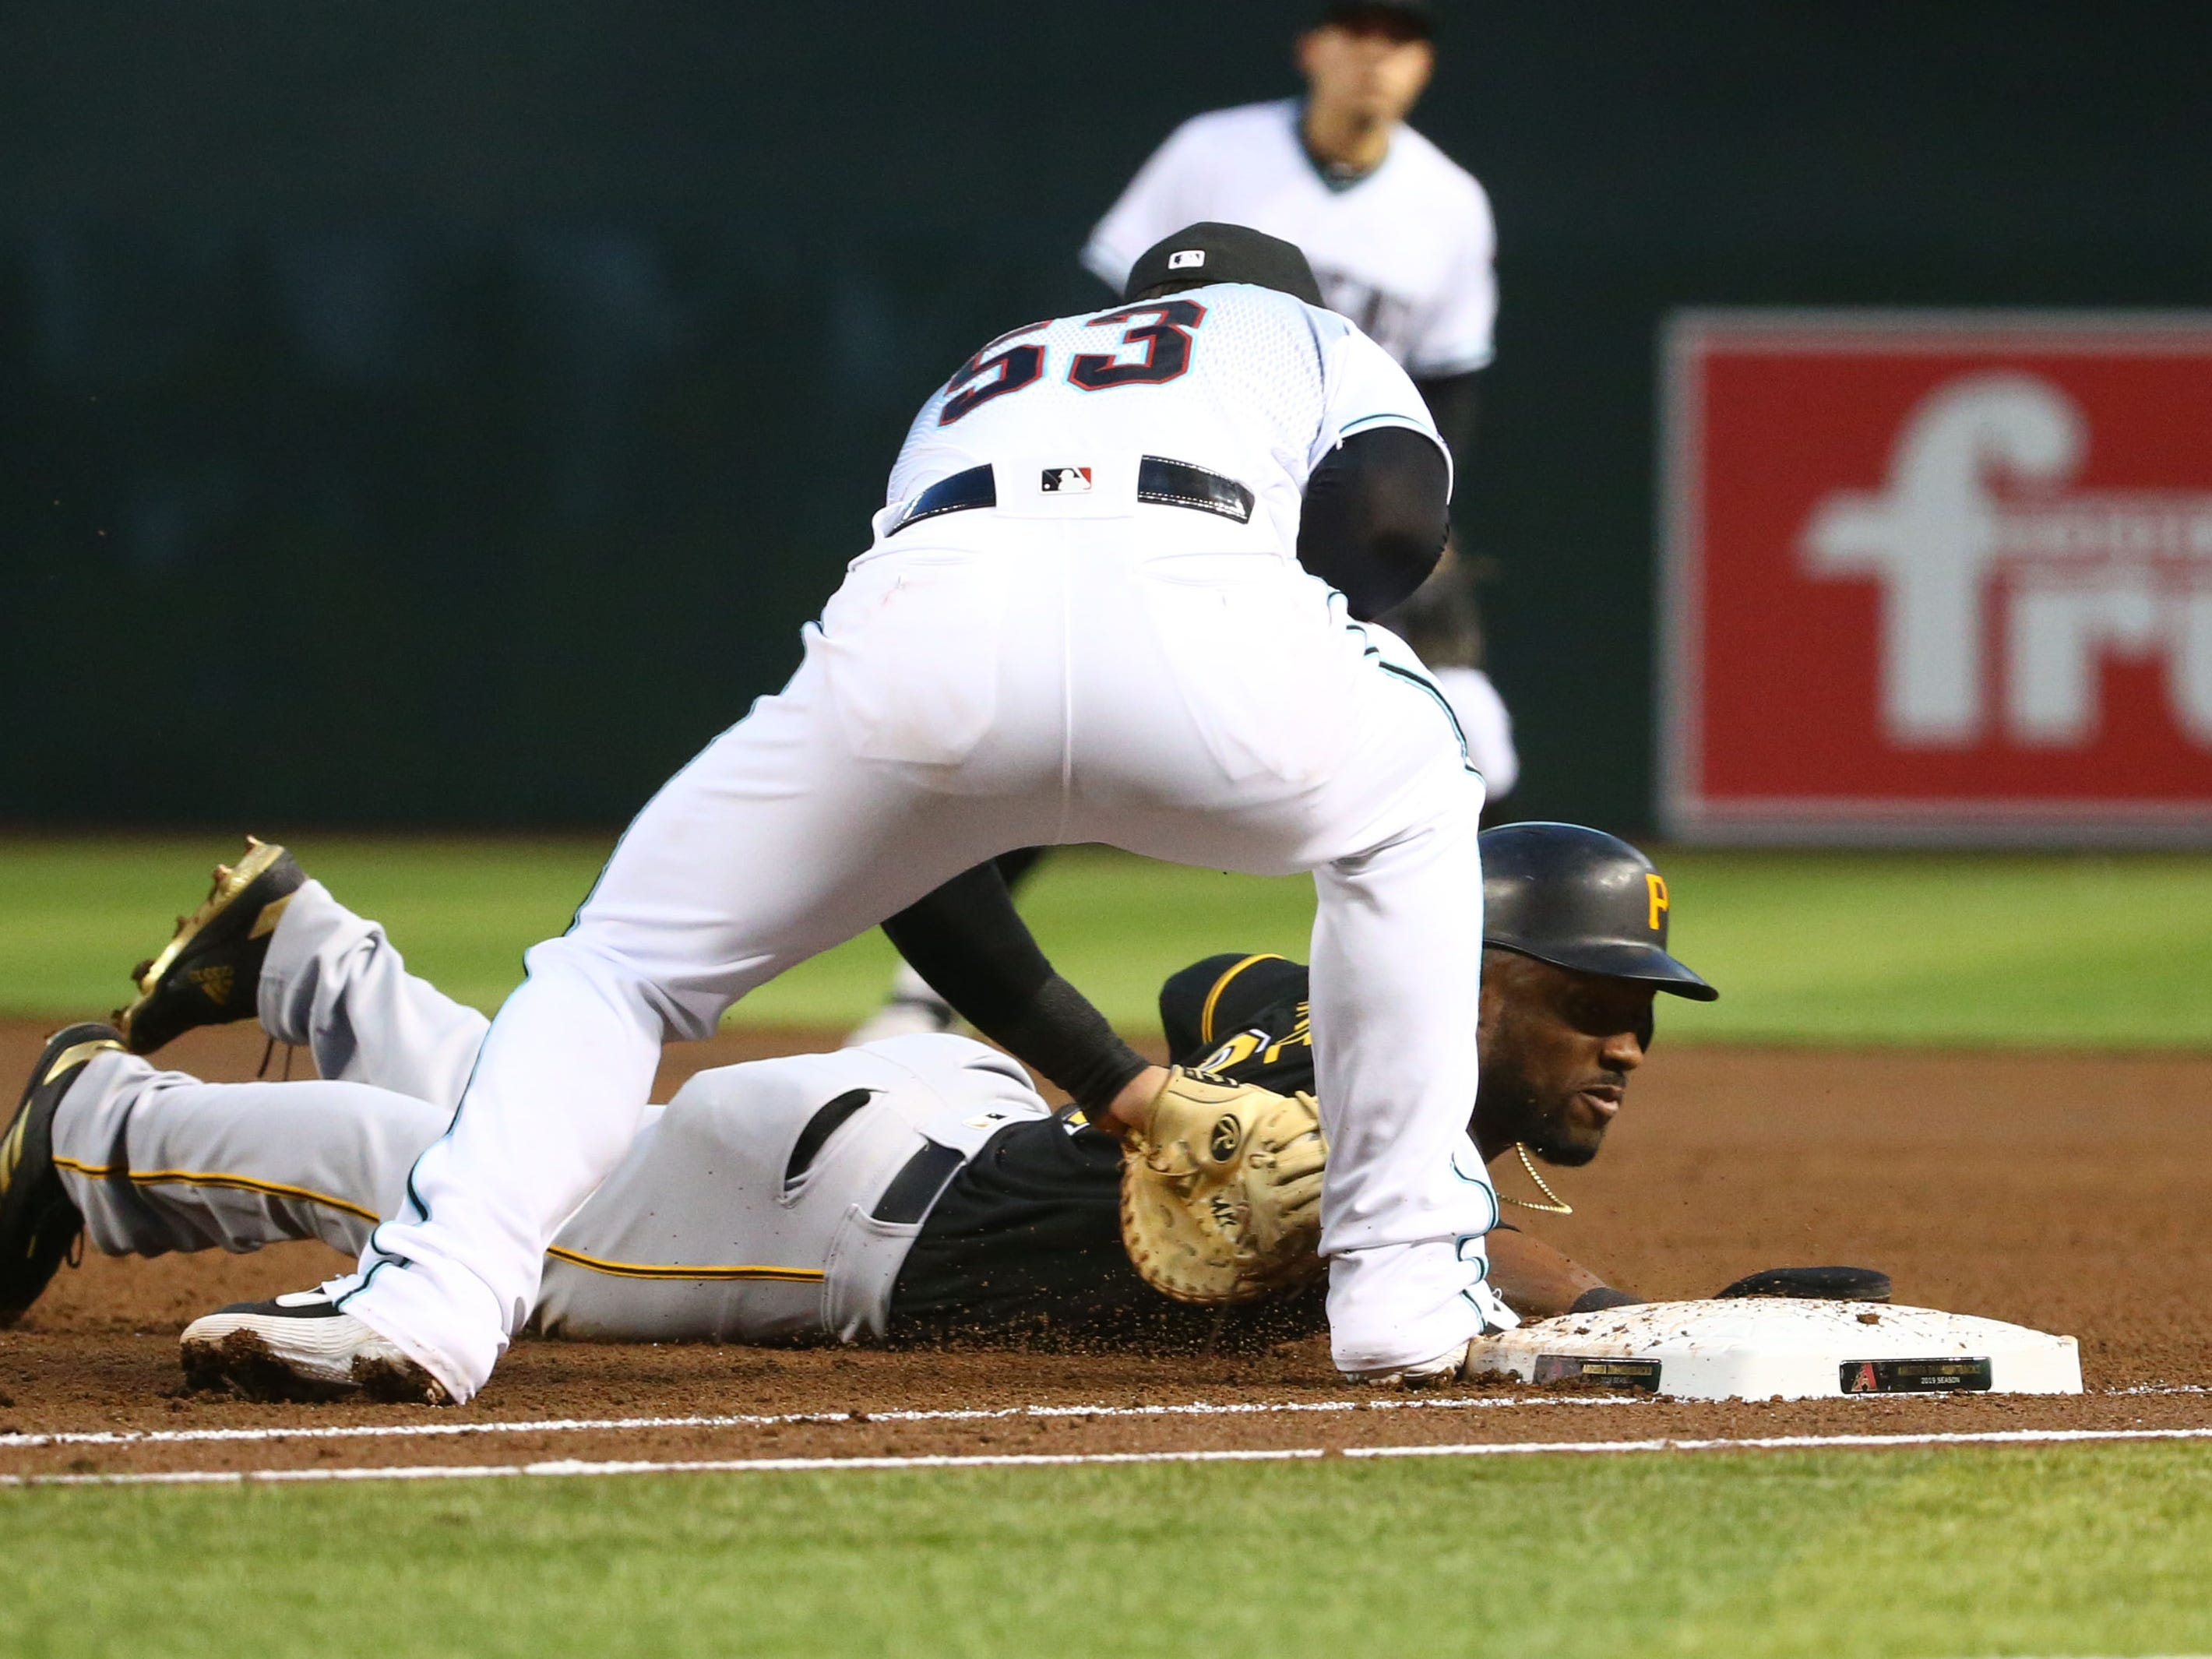 Pittsburgh Pirates Starling Marte dives safely back to first base past the tag by Arizona Diamondbacks 	Christian Walker in the third inning on May. 14, 2019 at Chase Field in Phoenix, Ariz.